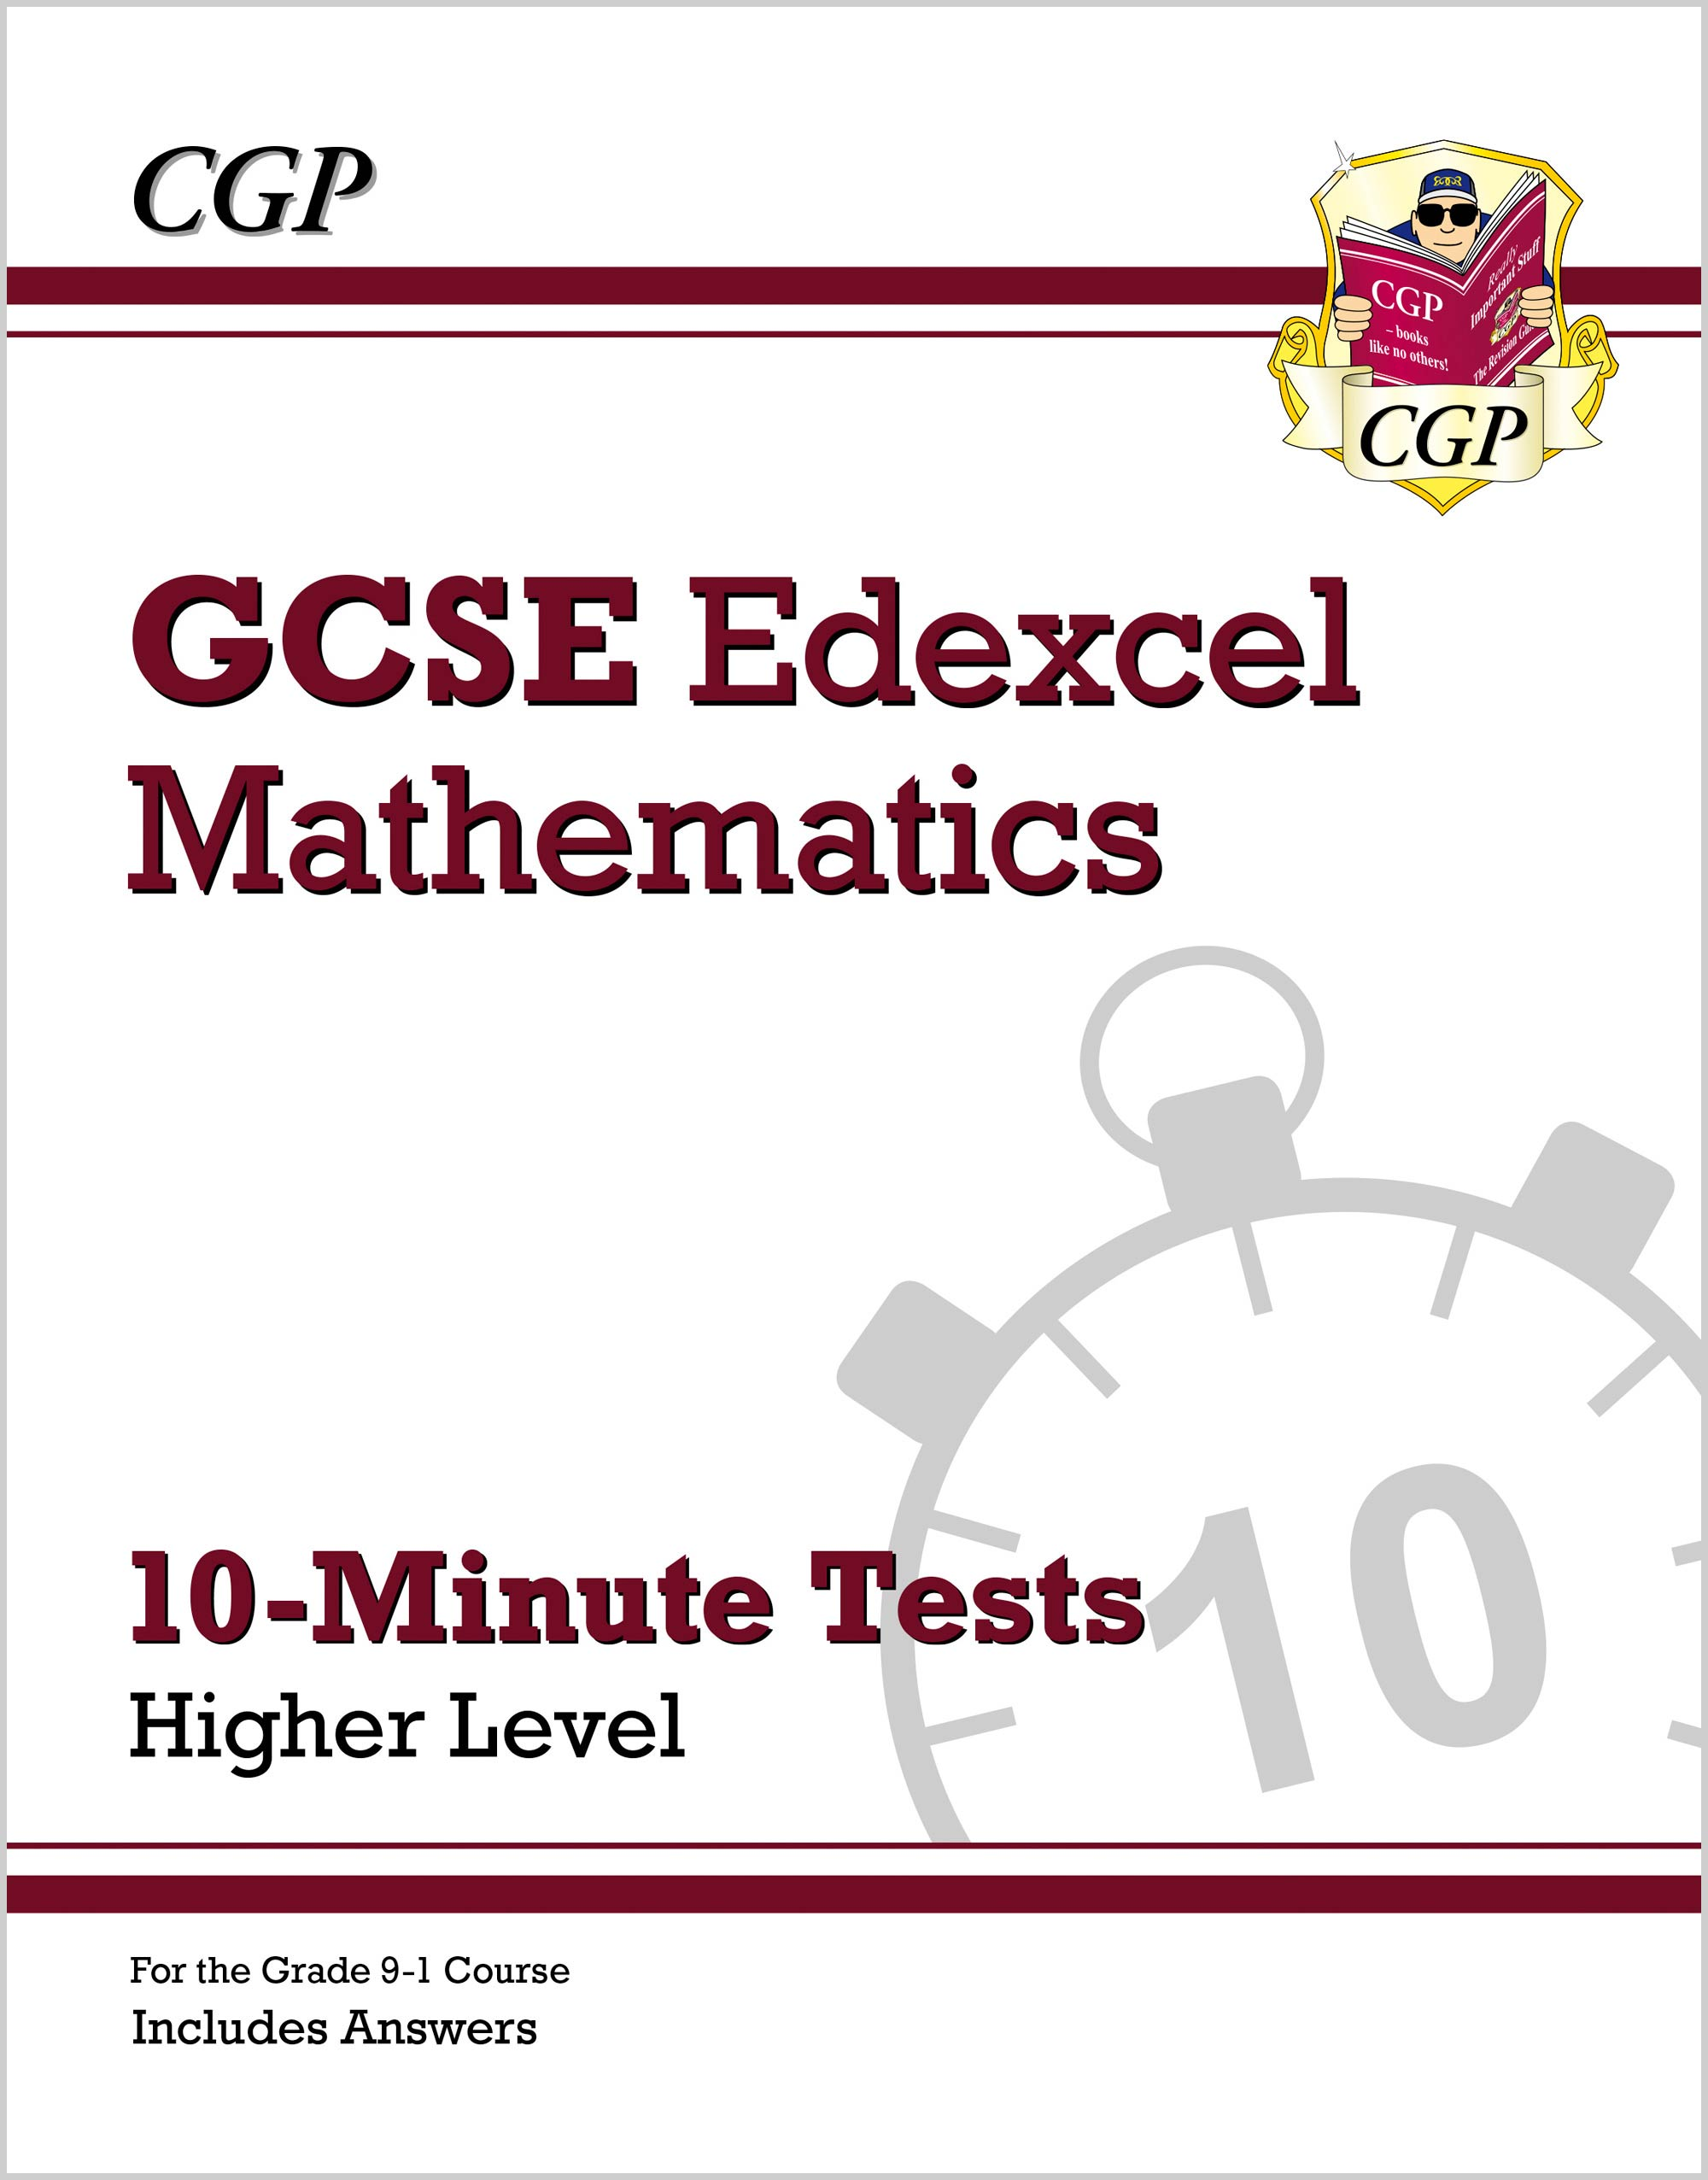 MXHXP41DK - New Grade 9-1 GCSE Maths Edexcel 10-Minute Tests - Higher (includes Answers)